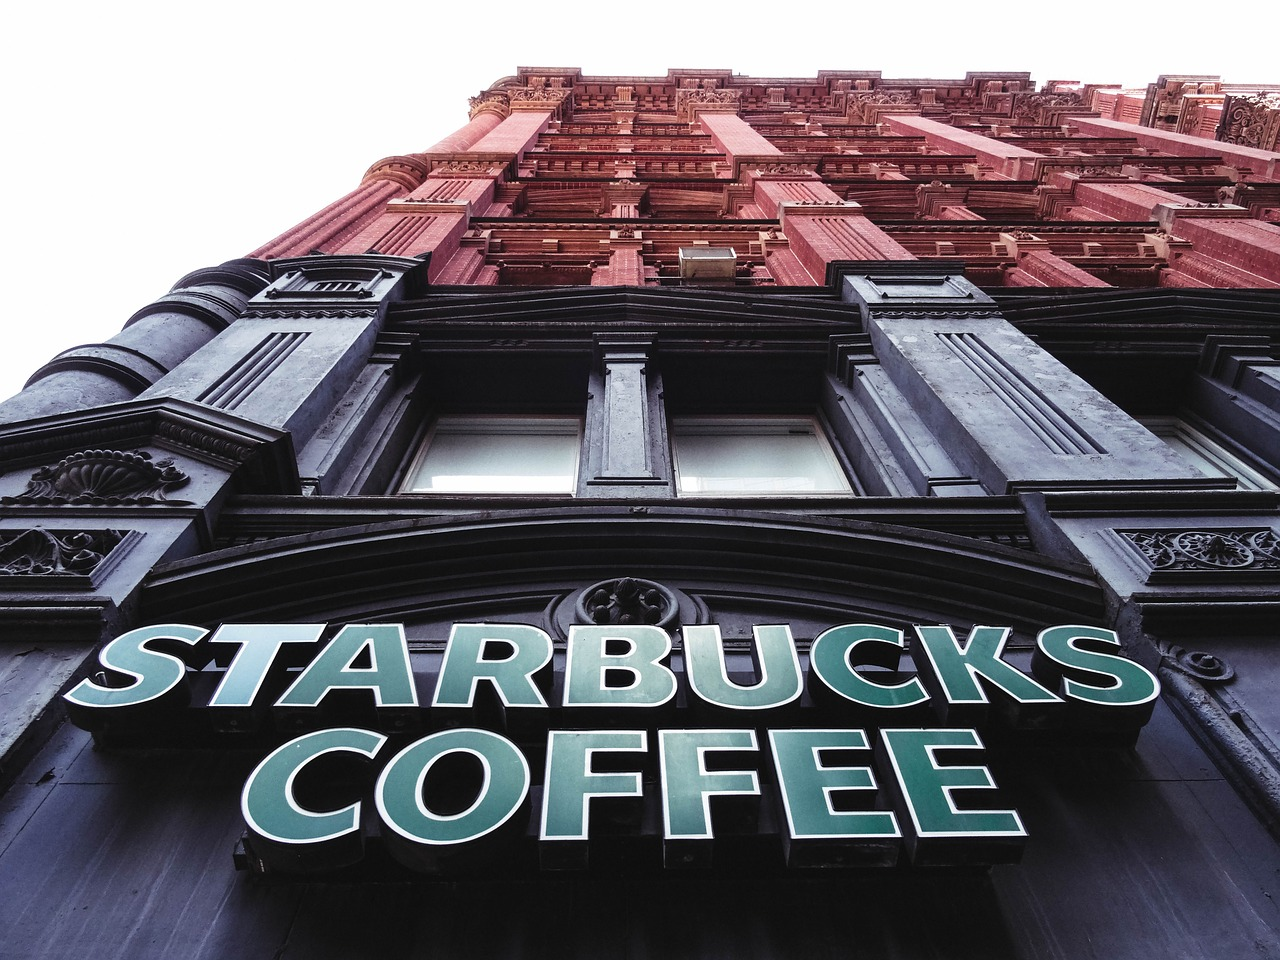 Incent launches - Starbucks revisited